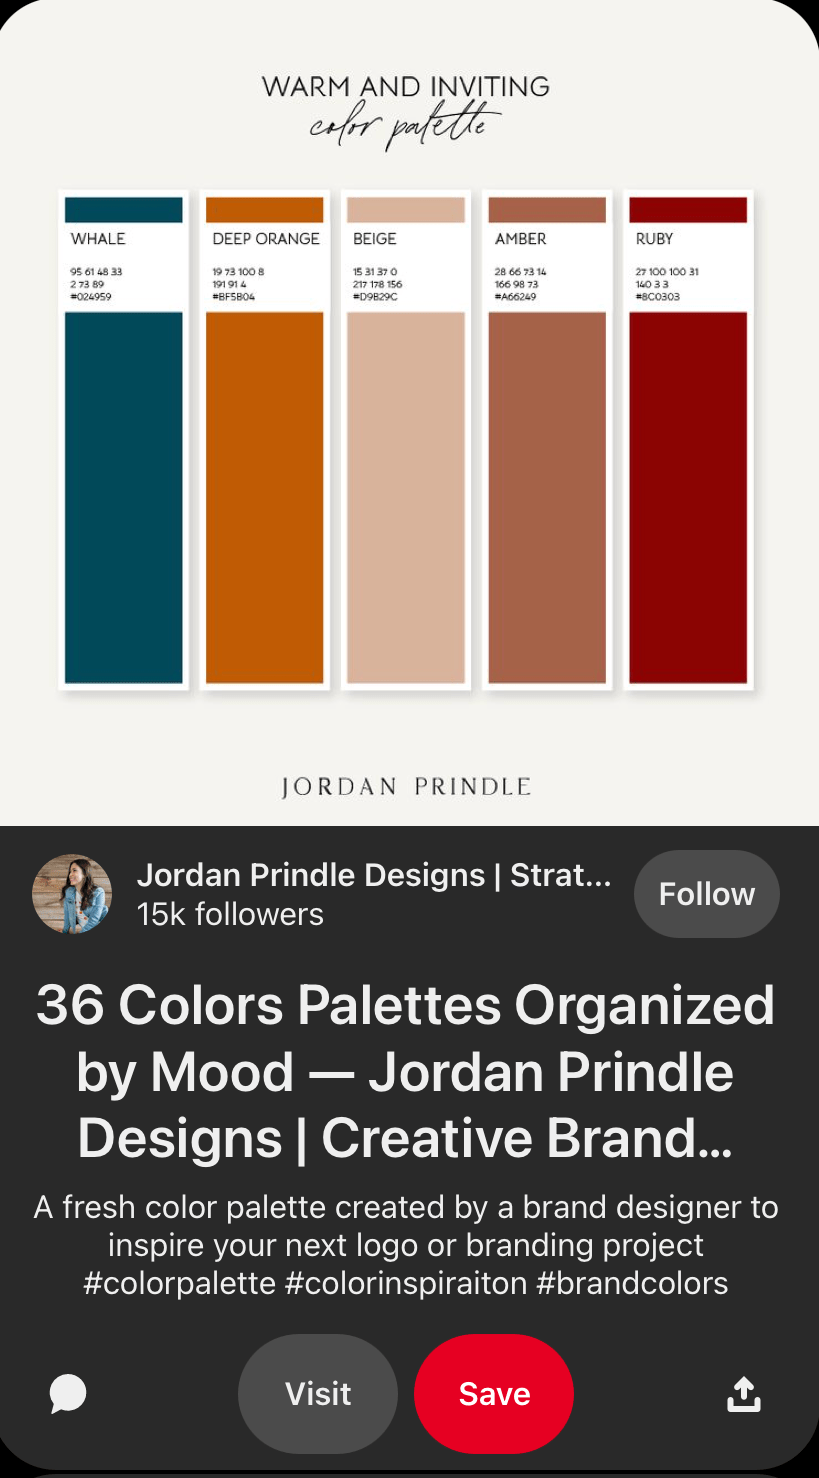 Warm and inviting color palette